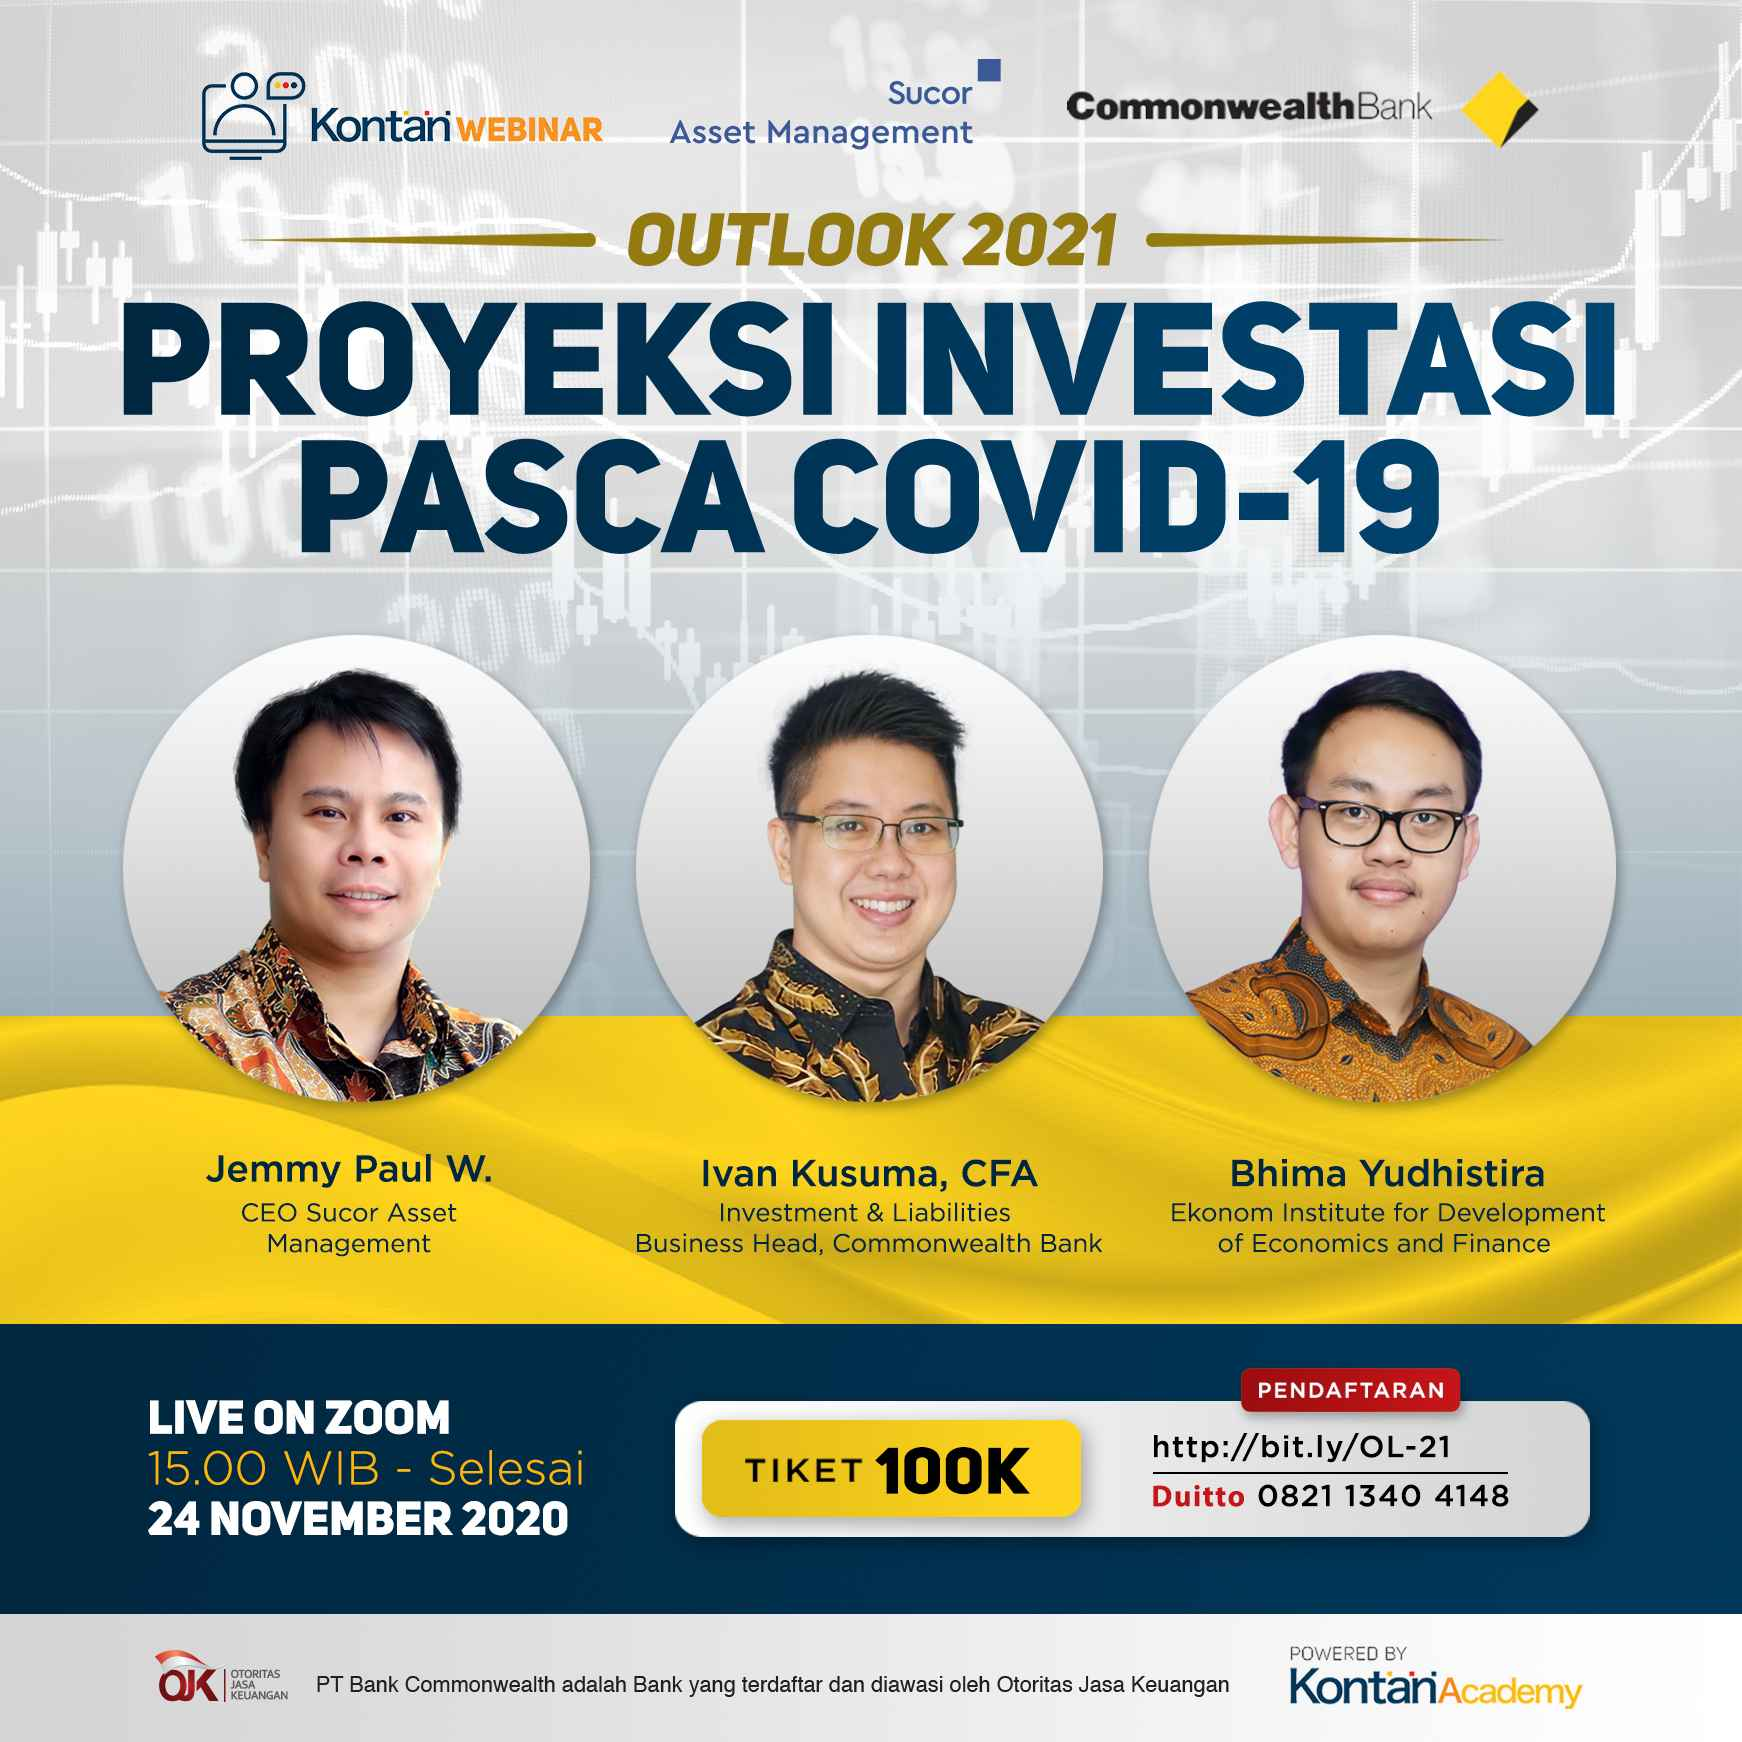 Outlook 2021: Proyeksi Investasi Pasca Covid-19